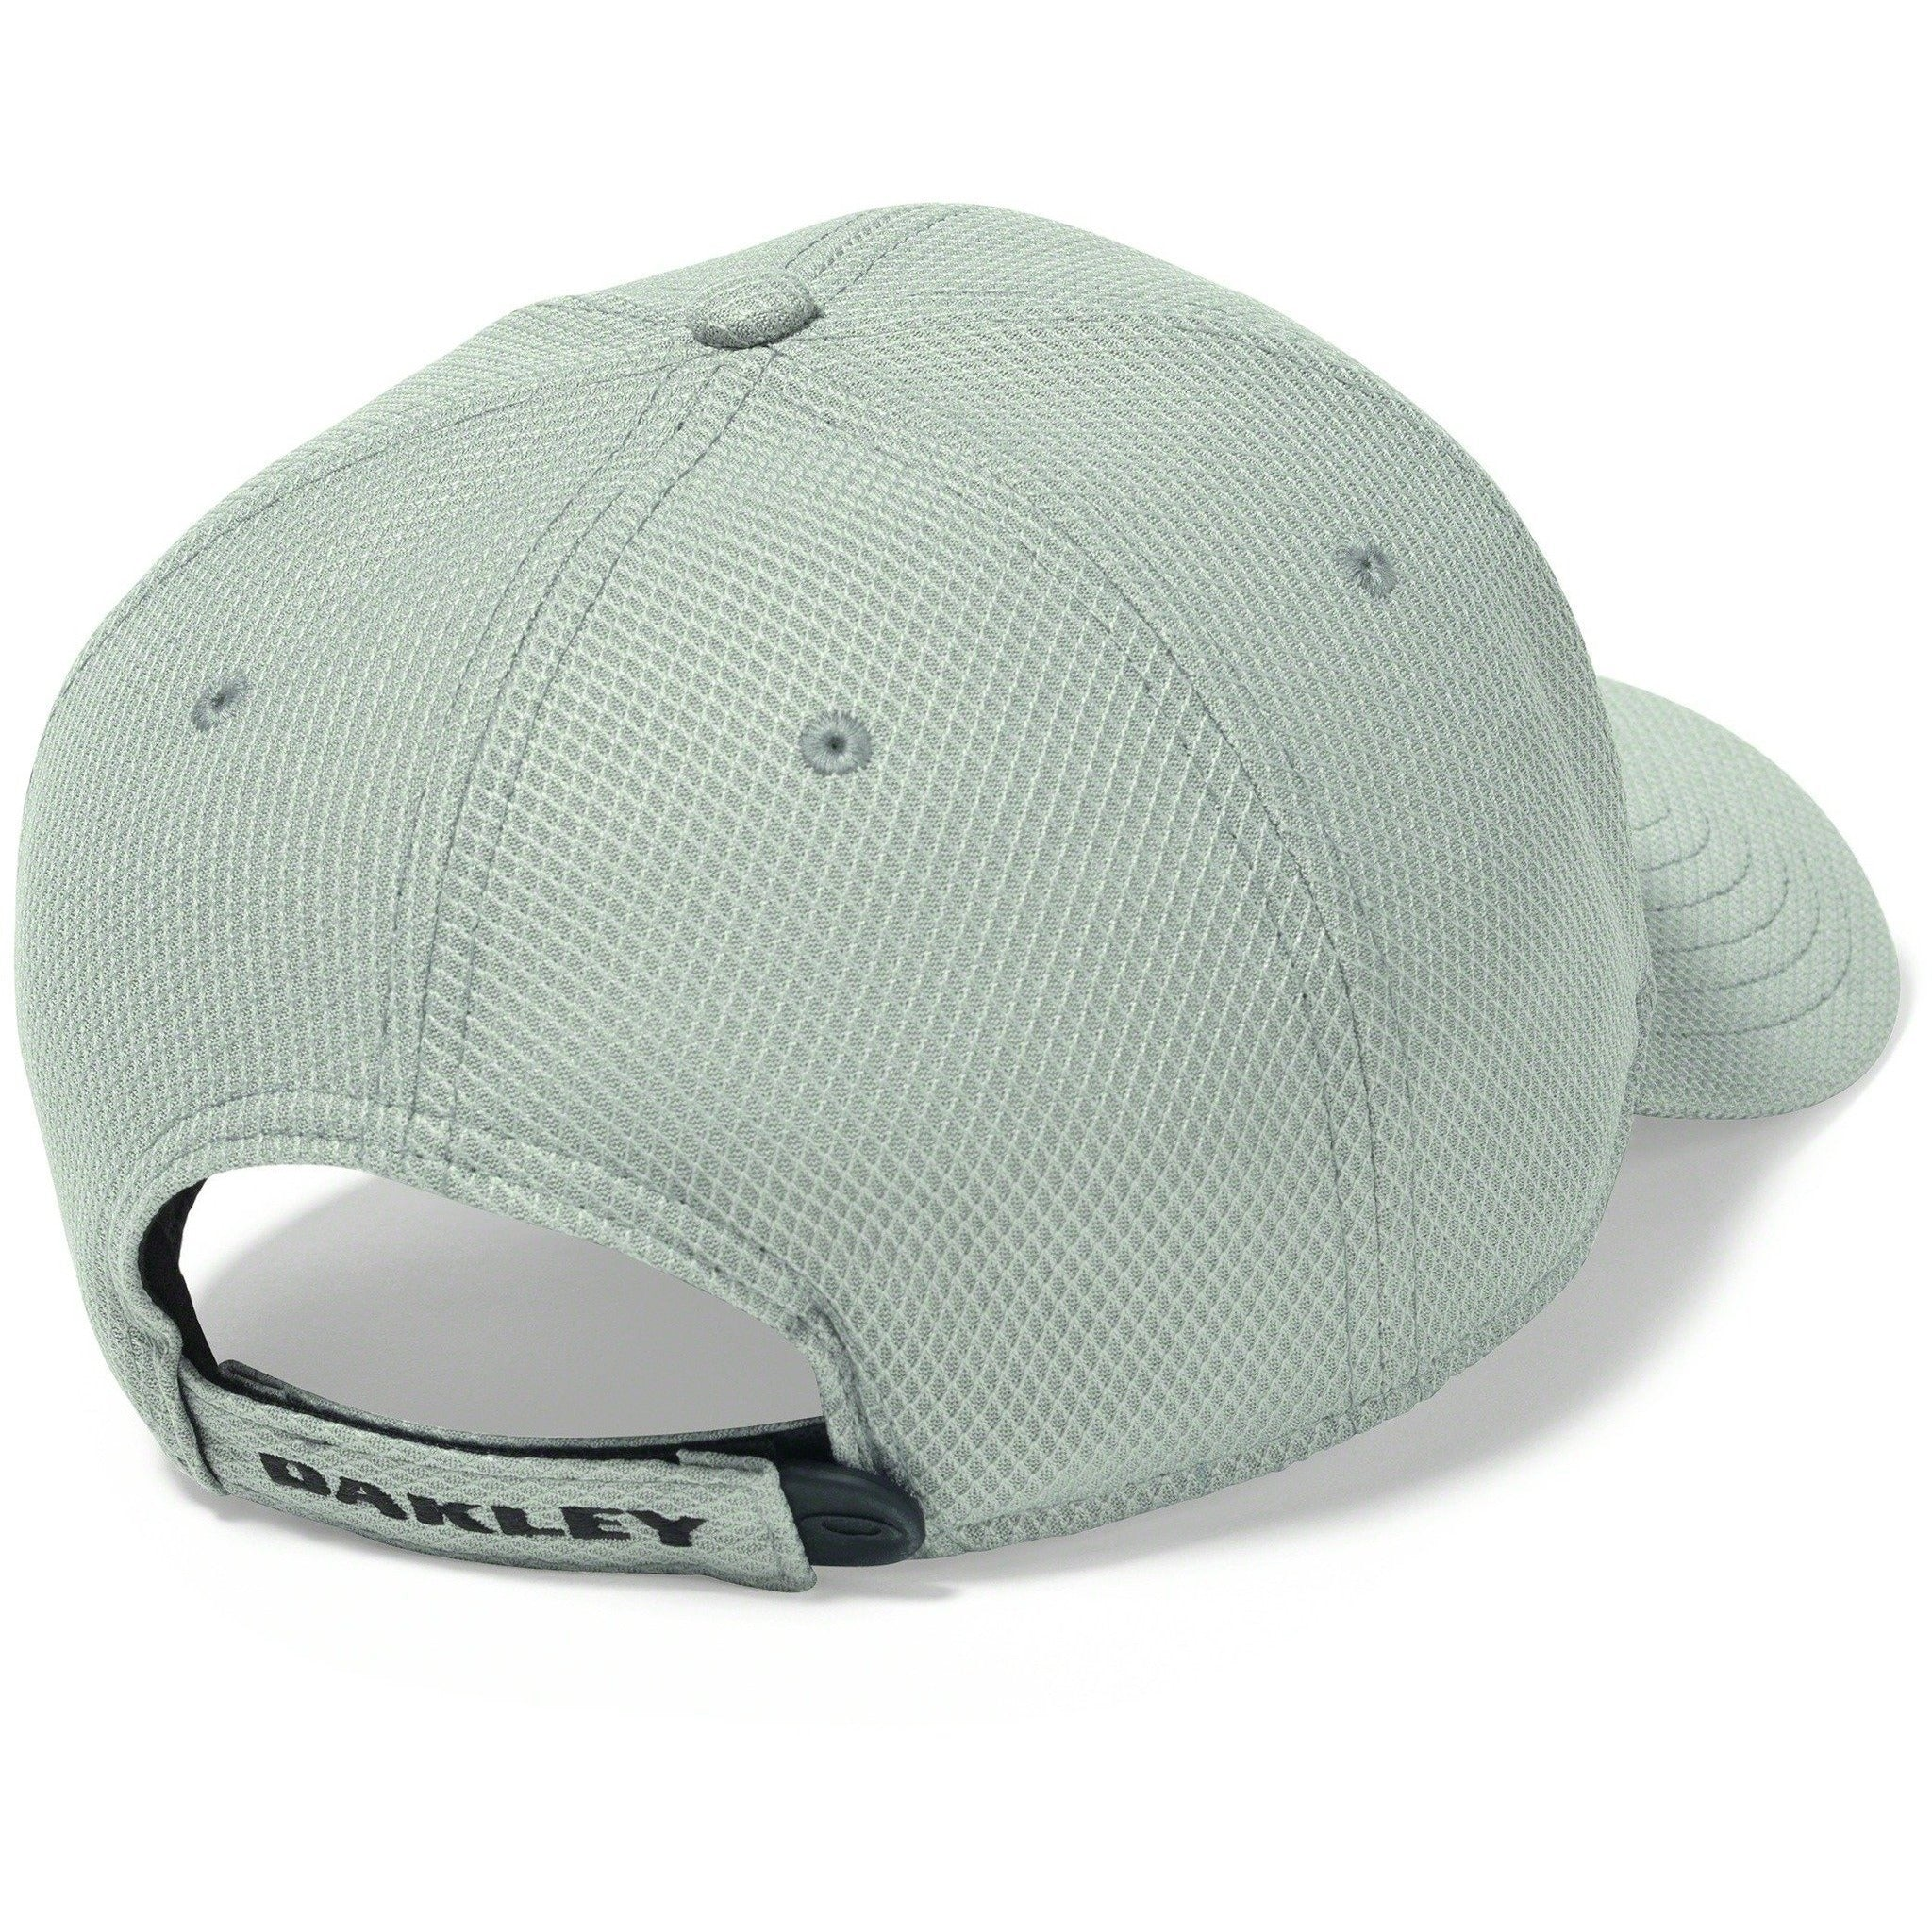 Oakley Ellipse Golf Hats - 88 Gear